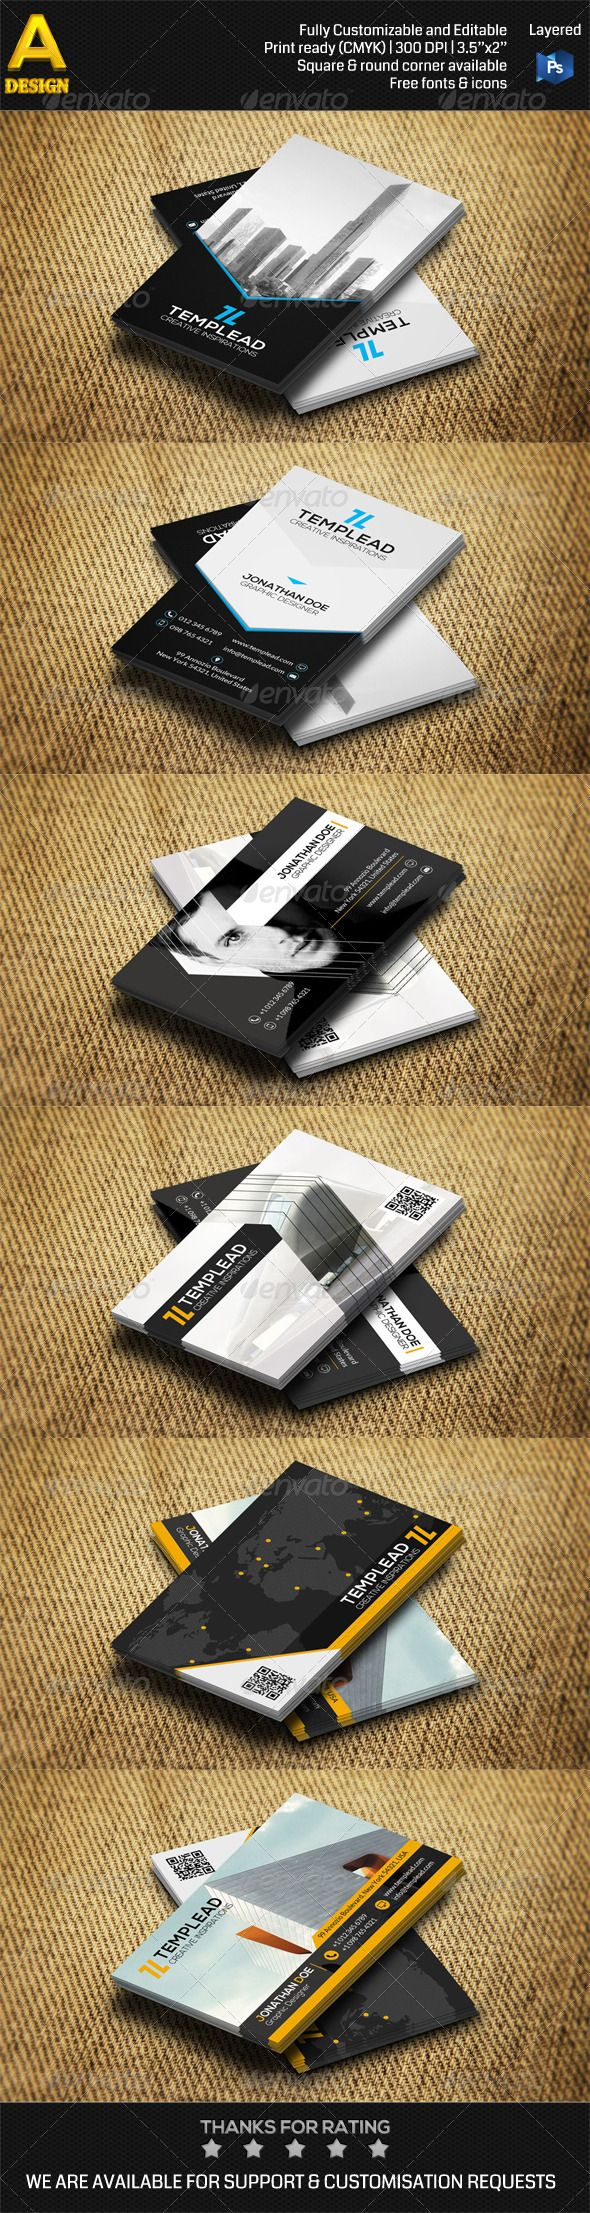 3 in 1 Construction Business Card Bundle Template #card #vcard Download: http://graphicriver.net/item/3-in-1-construction-business-card-bundle-0032/8590024?ref=ksioks